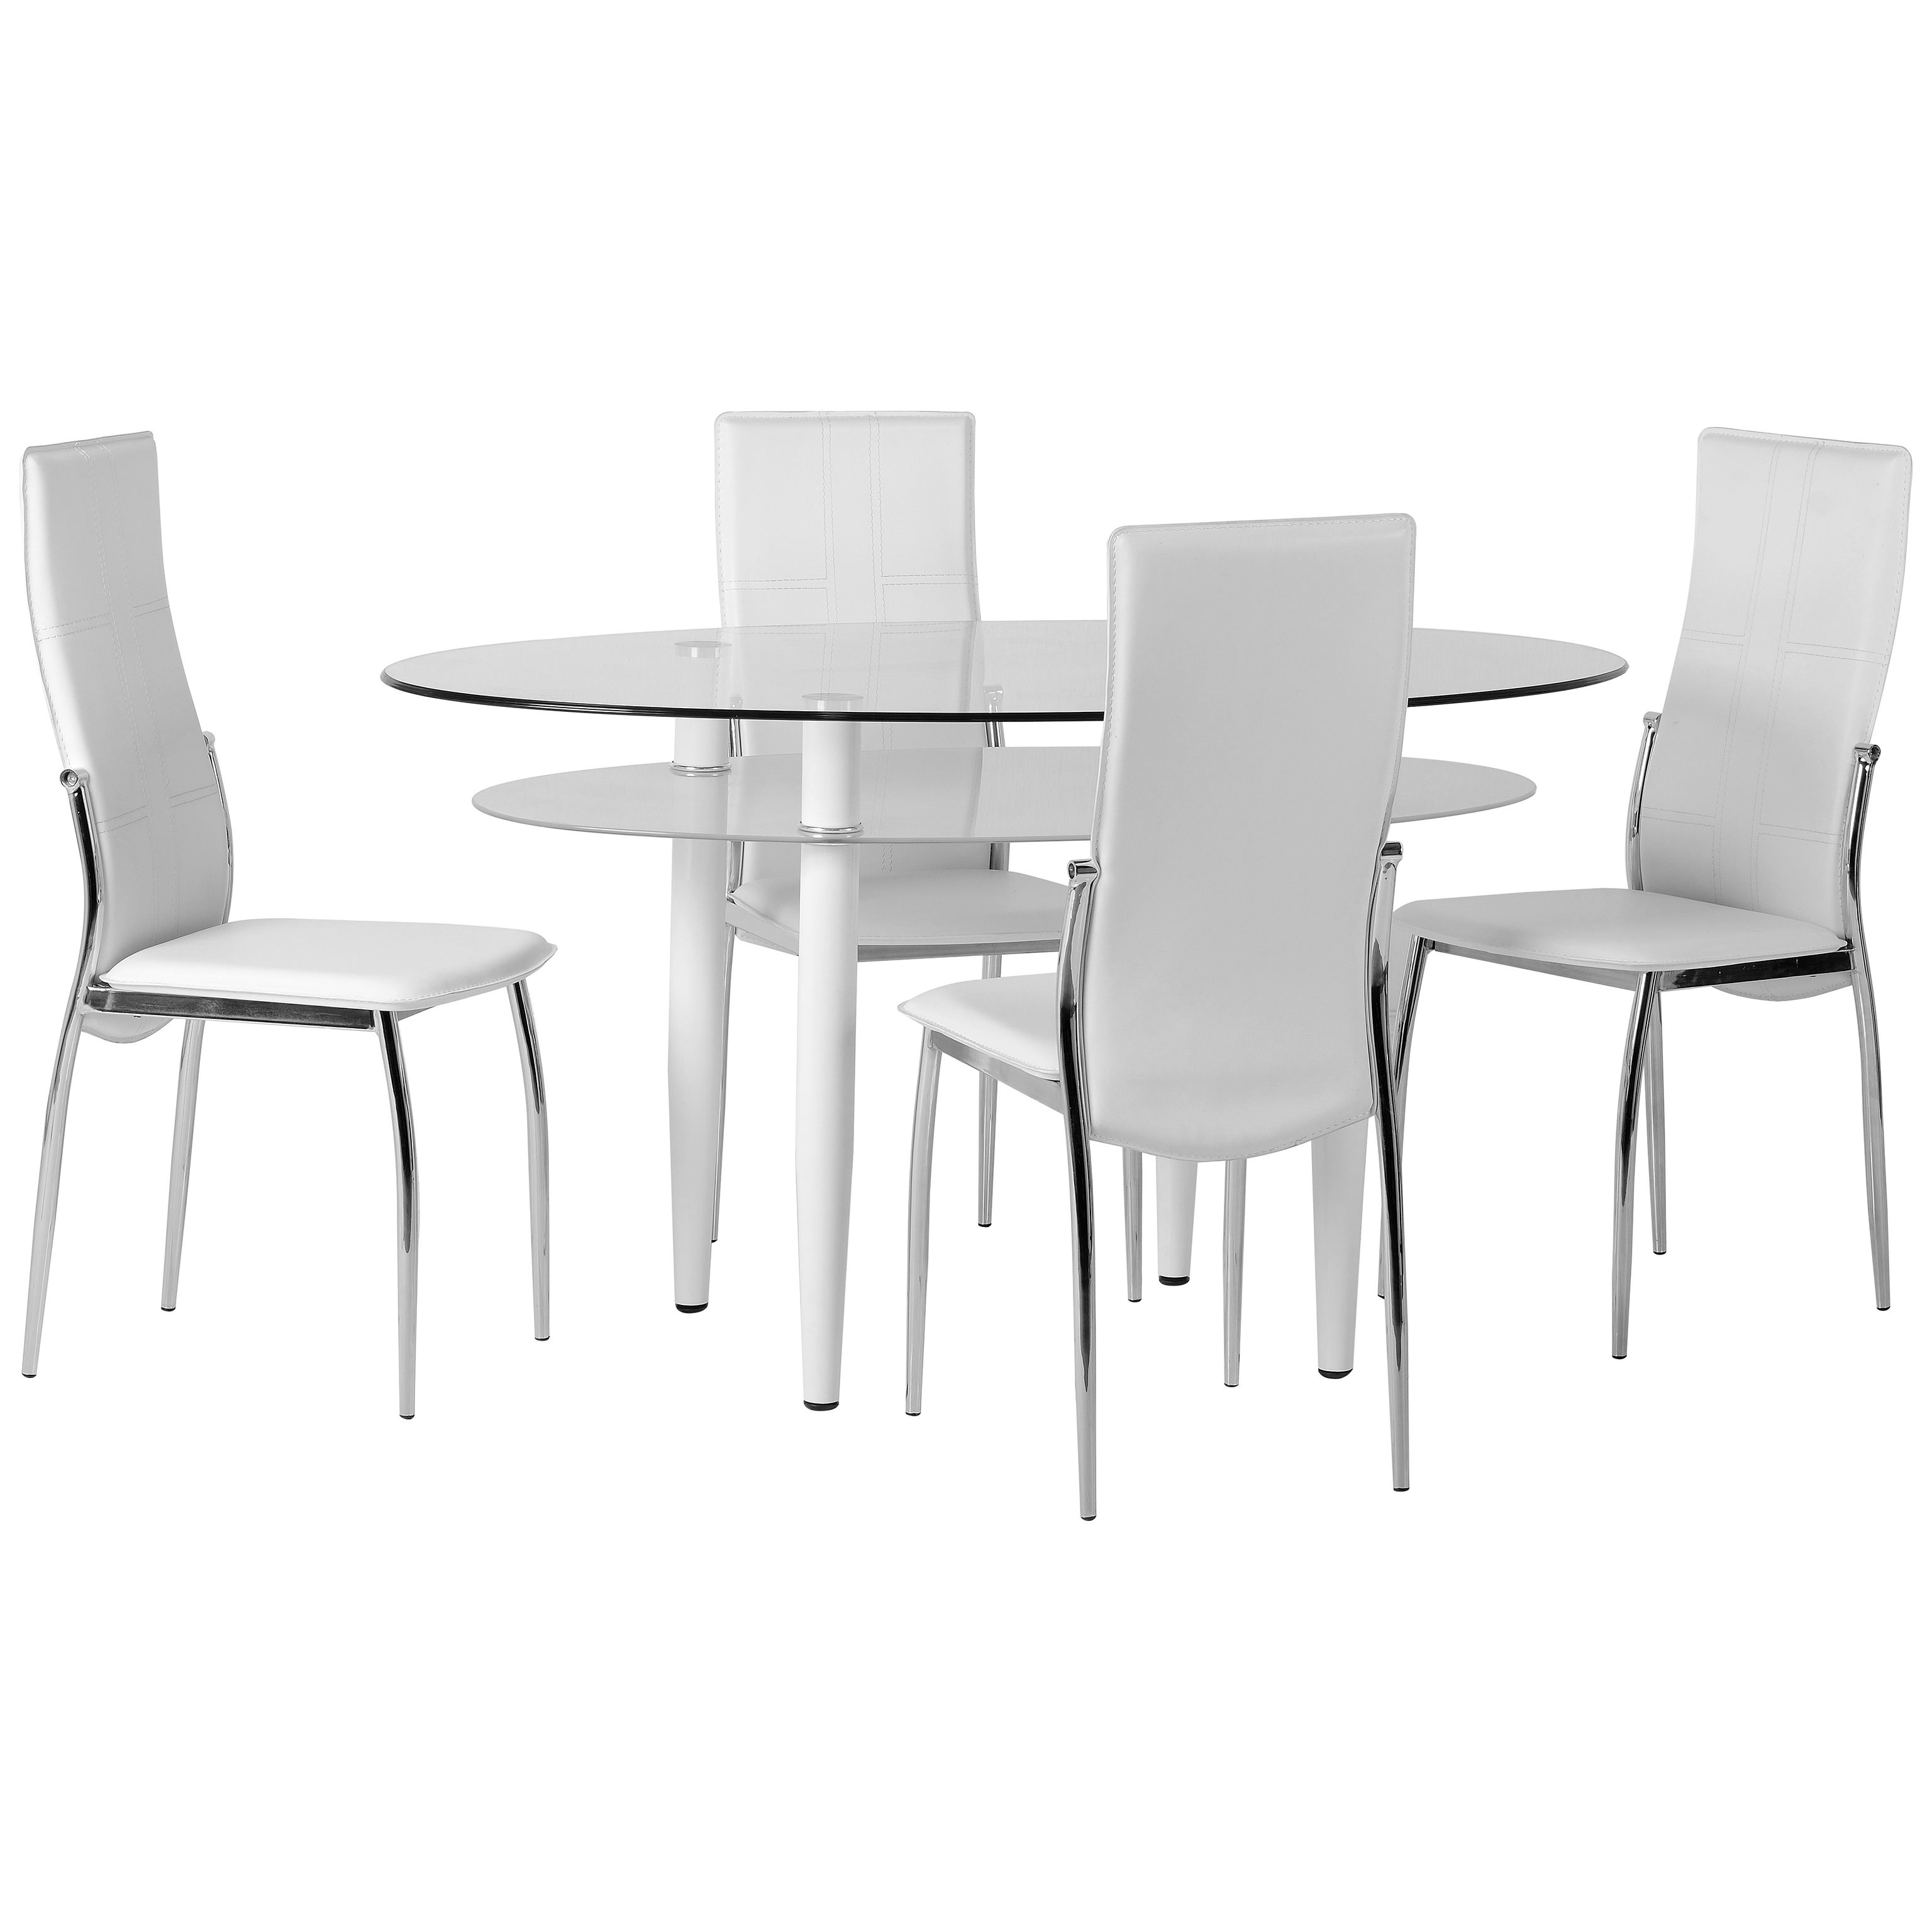 leg broyhill furniture room awesome and seabrooke table chairs within chair sets piece dining turned